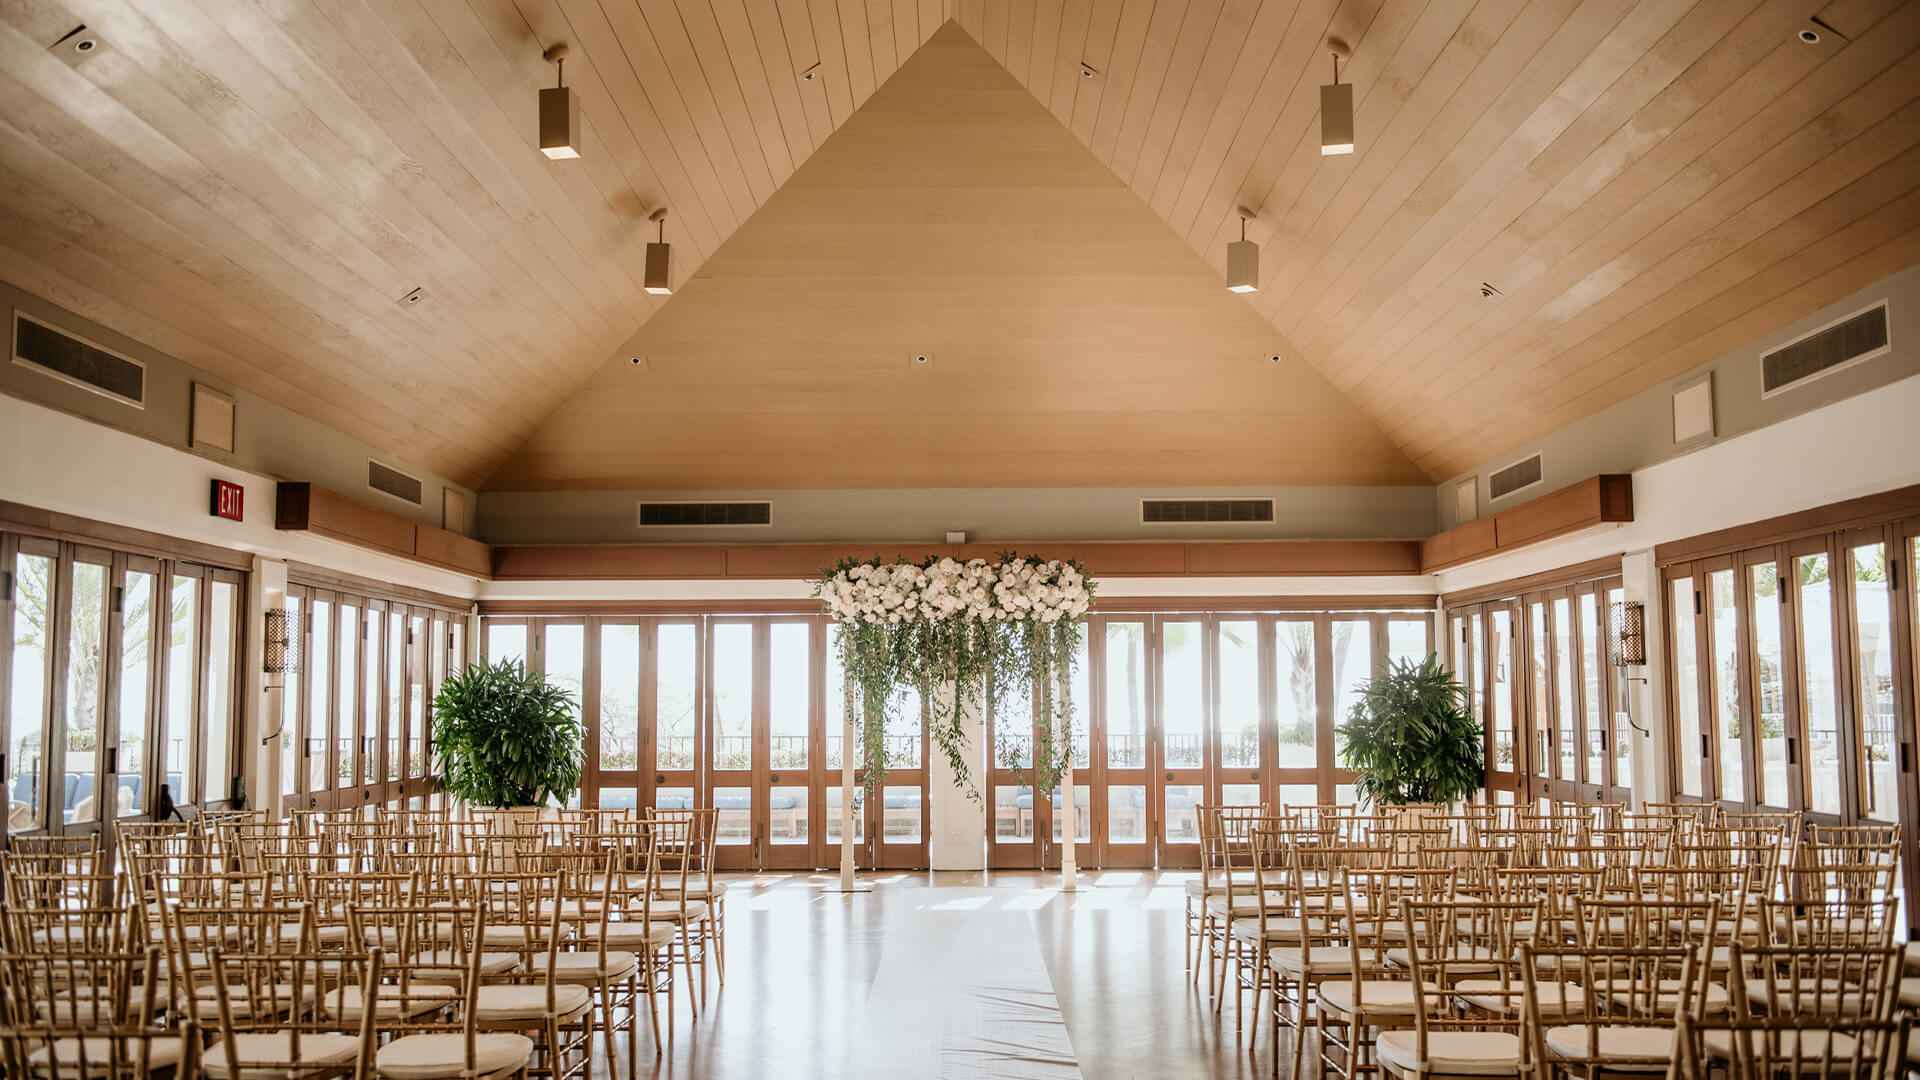 Hau Terrace can be set up as a wedding ceremony or reception venue